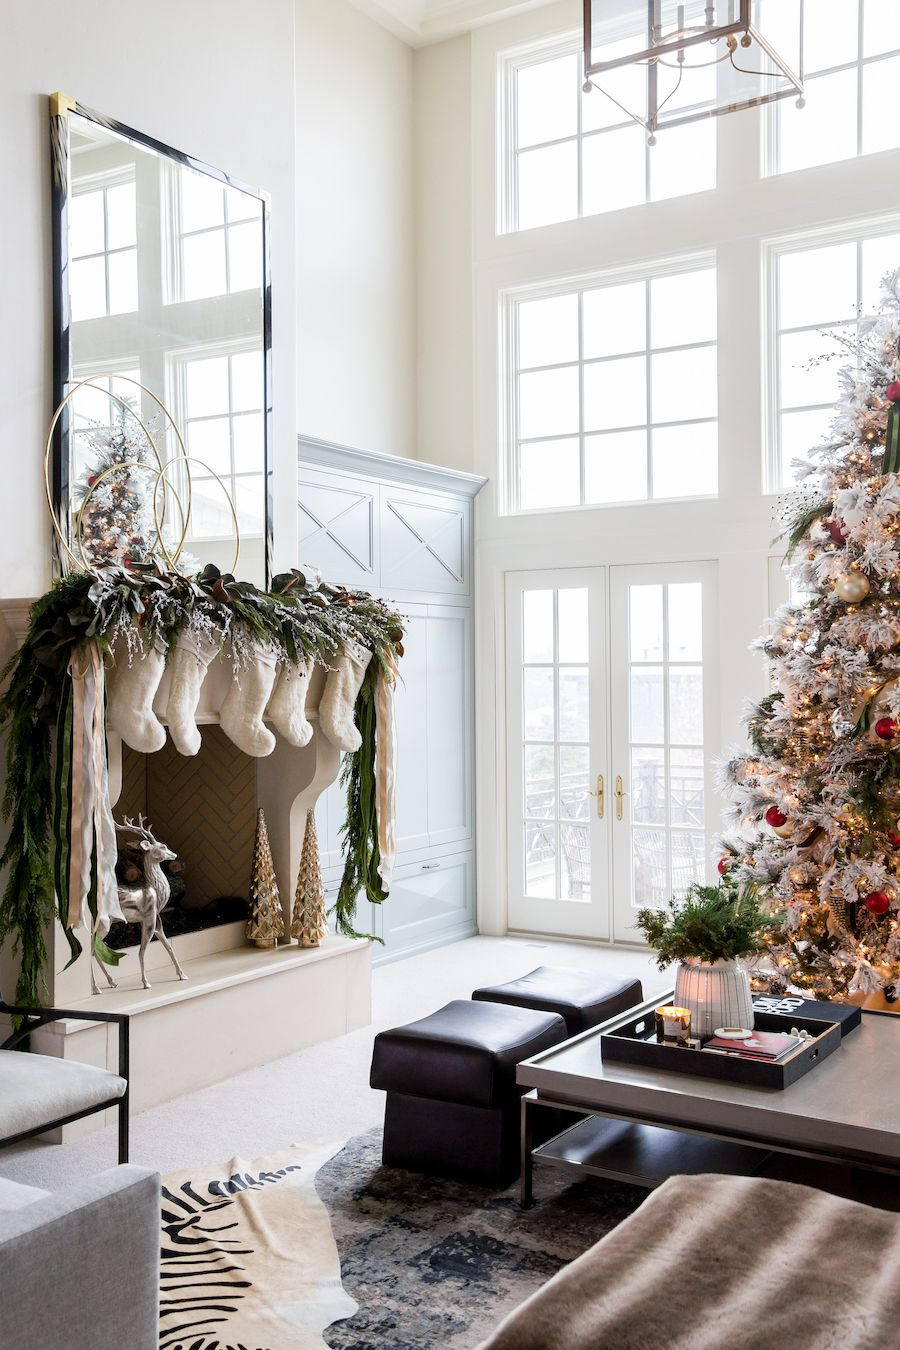 Tour A Blogger S Home Decked Out For The Holidays With Images